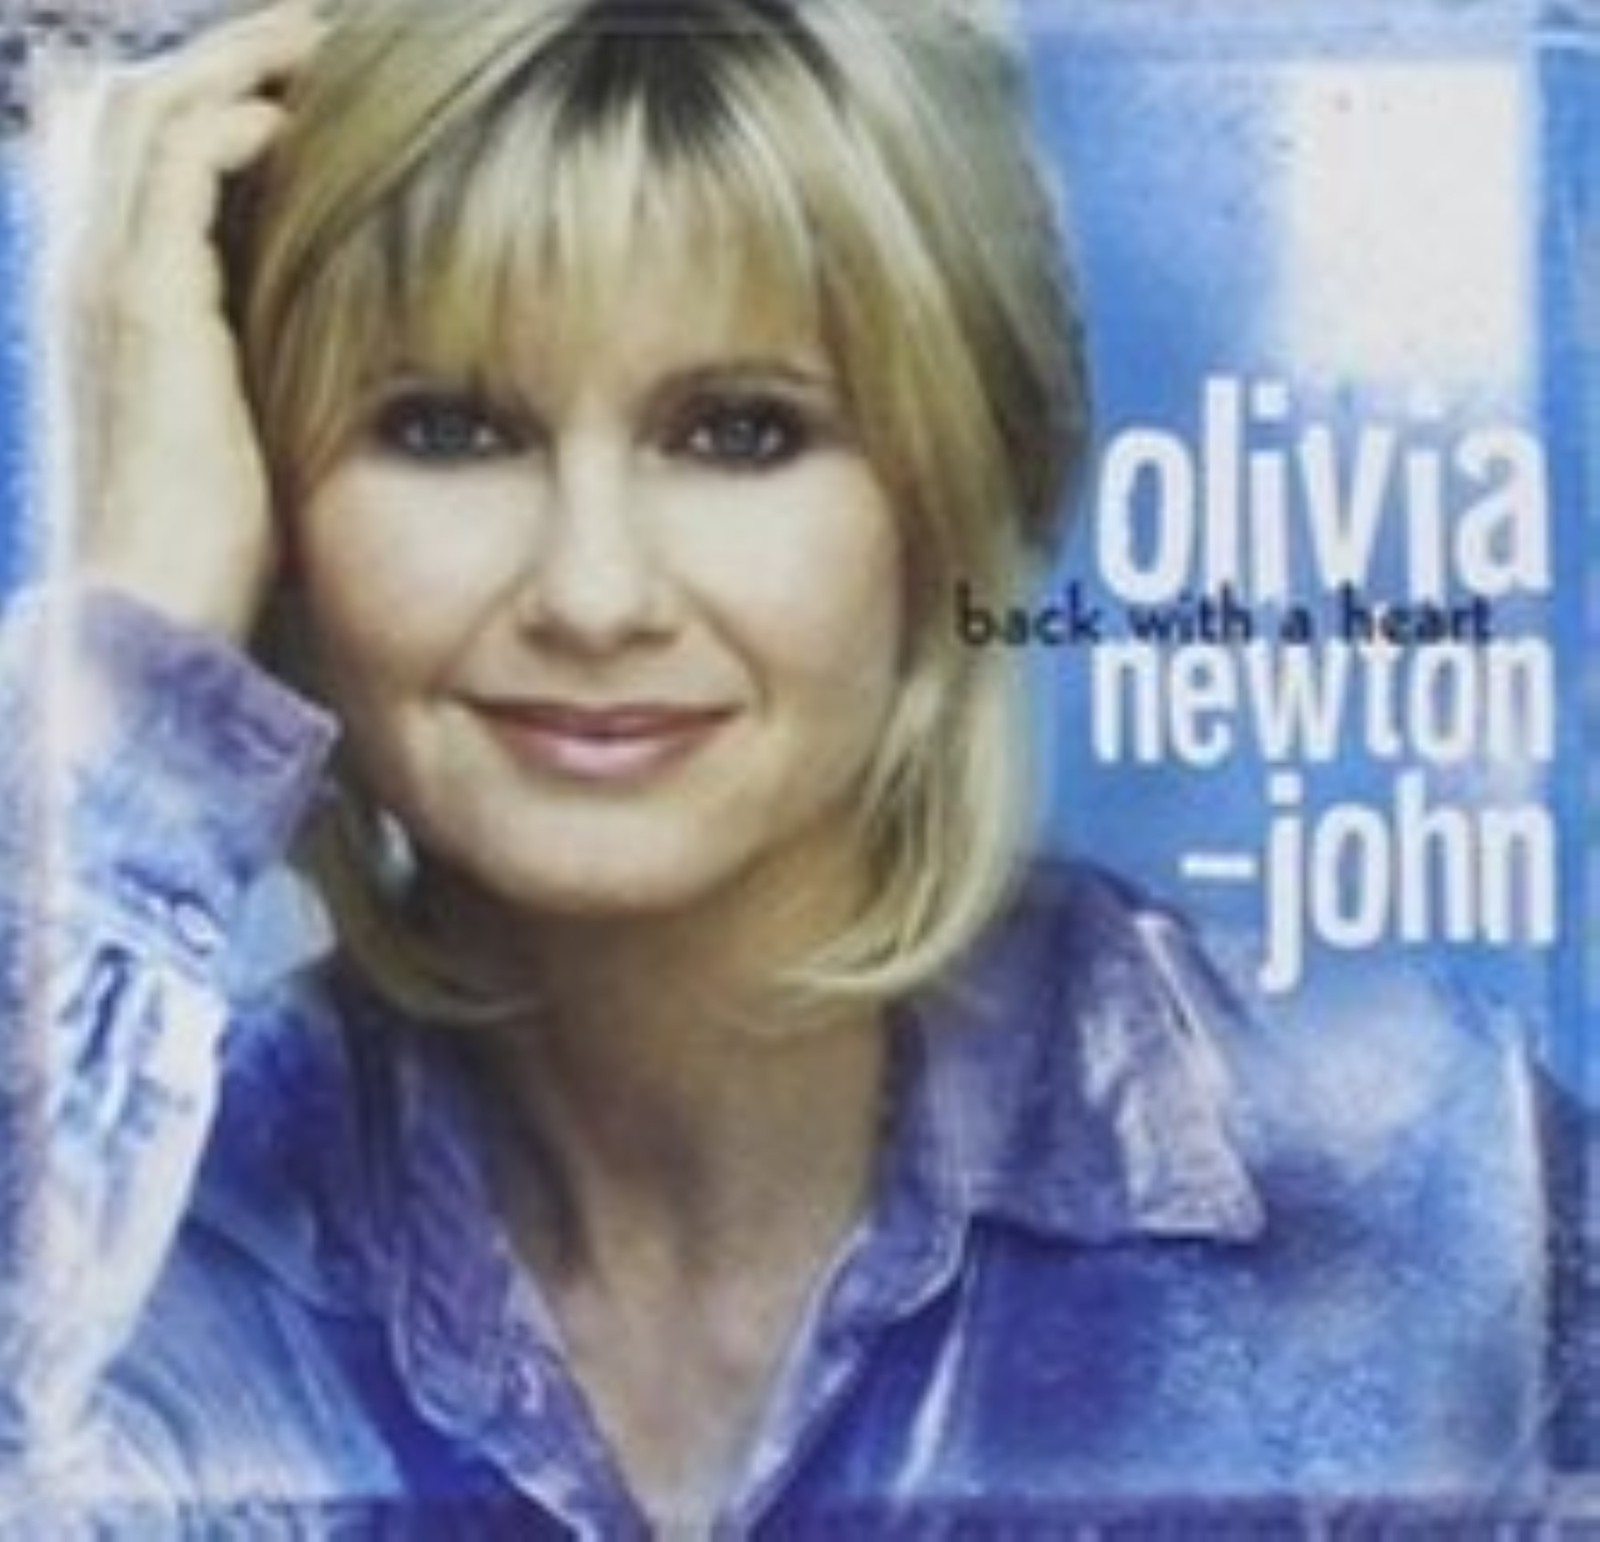 Back With a Heart by Olivia Newton-John Cd